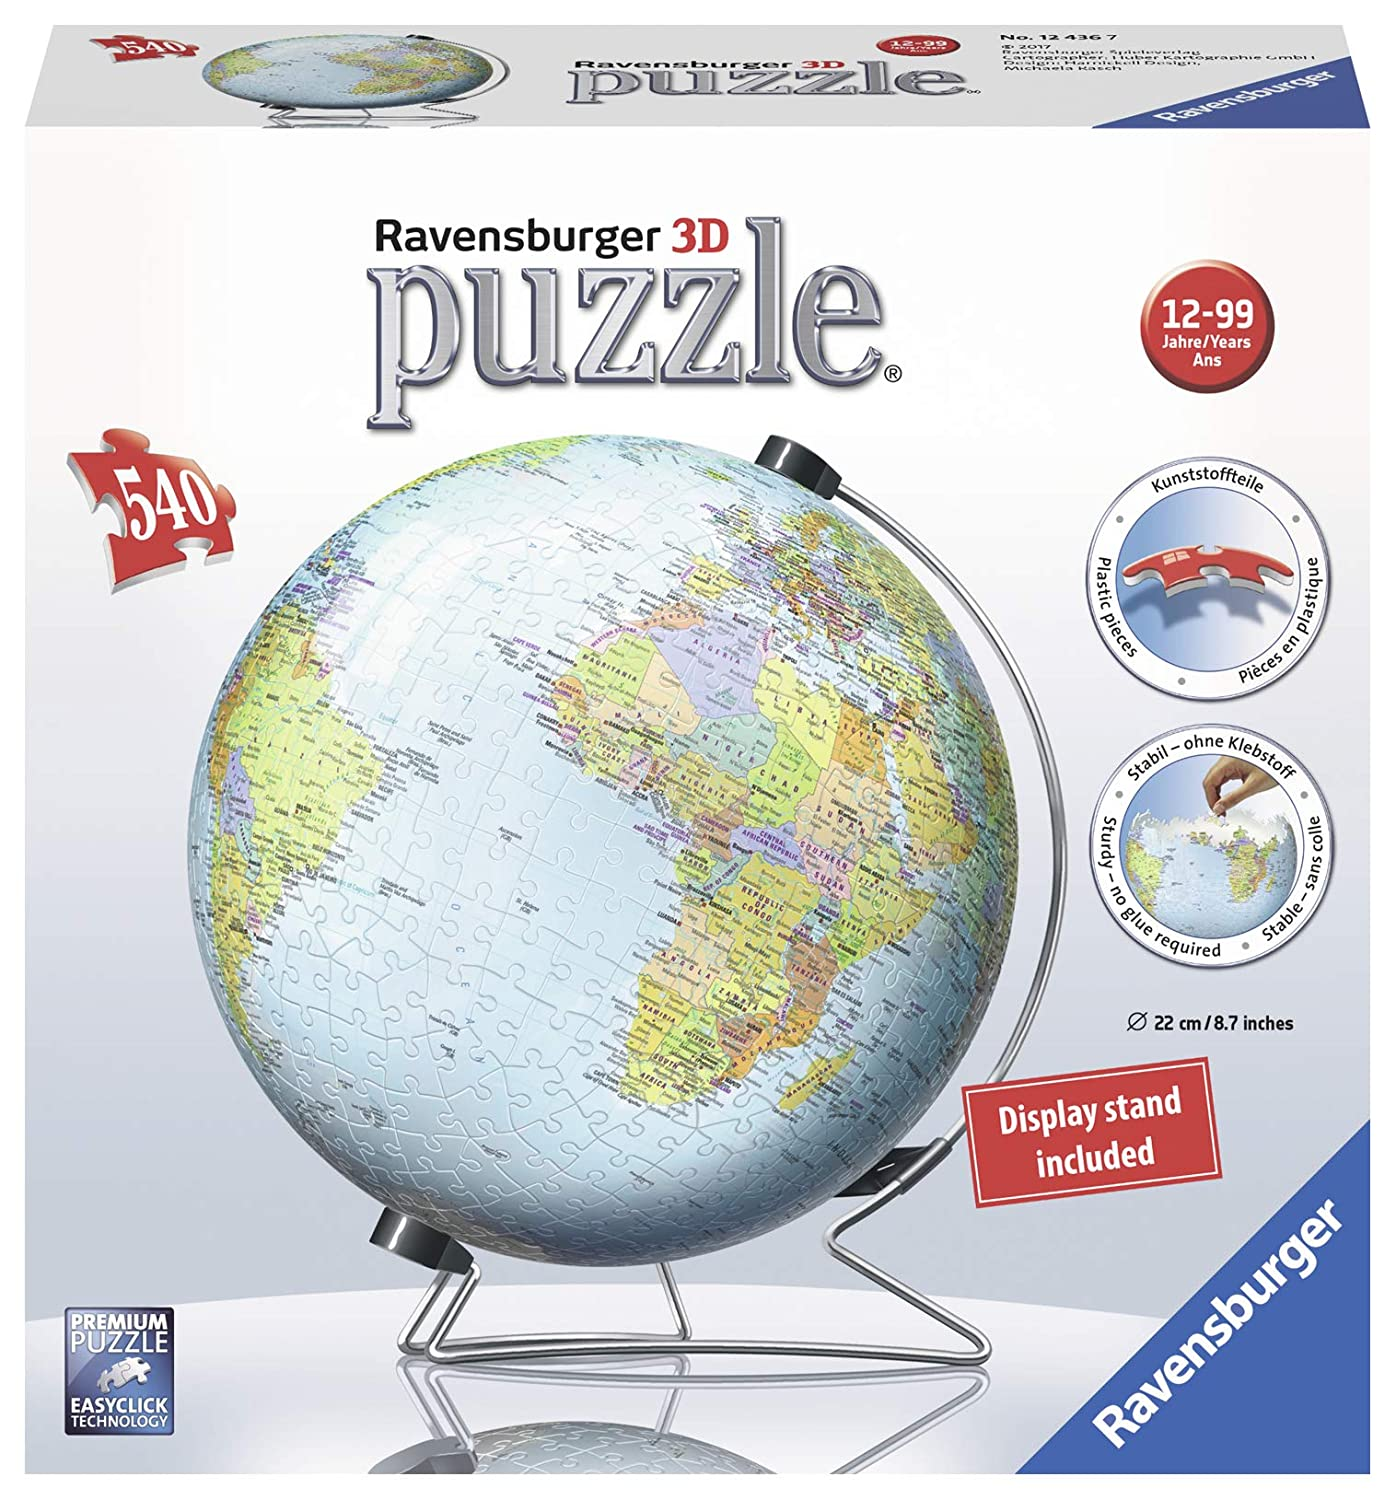 Ravensburger The Earth 540 Piece 3D Jigsaw Puzzle for Kids and Adults - Easy Click Technology Means Pieces Fit Together Perfectly 12436